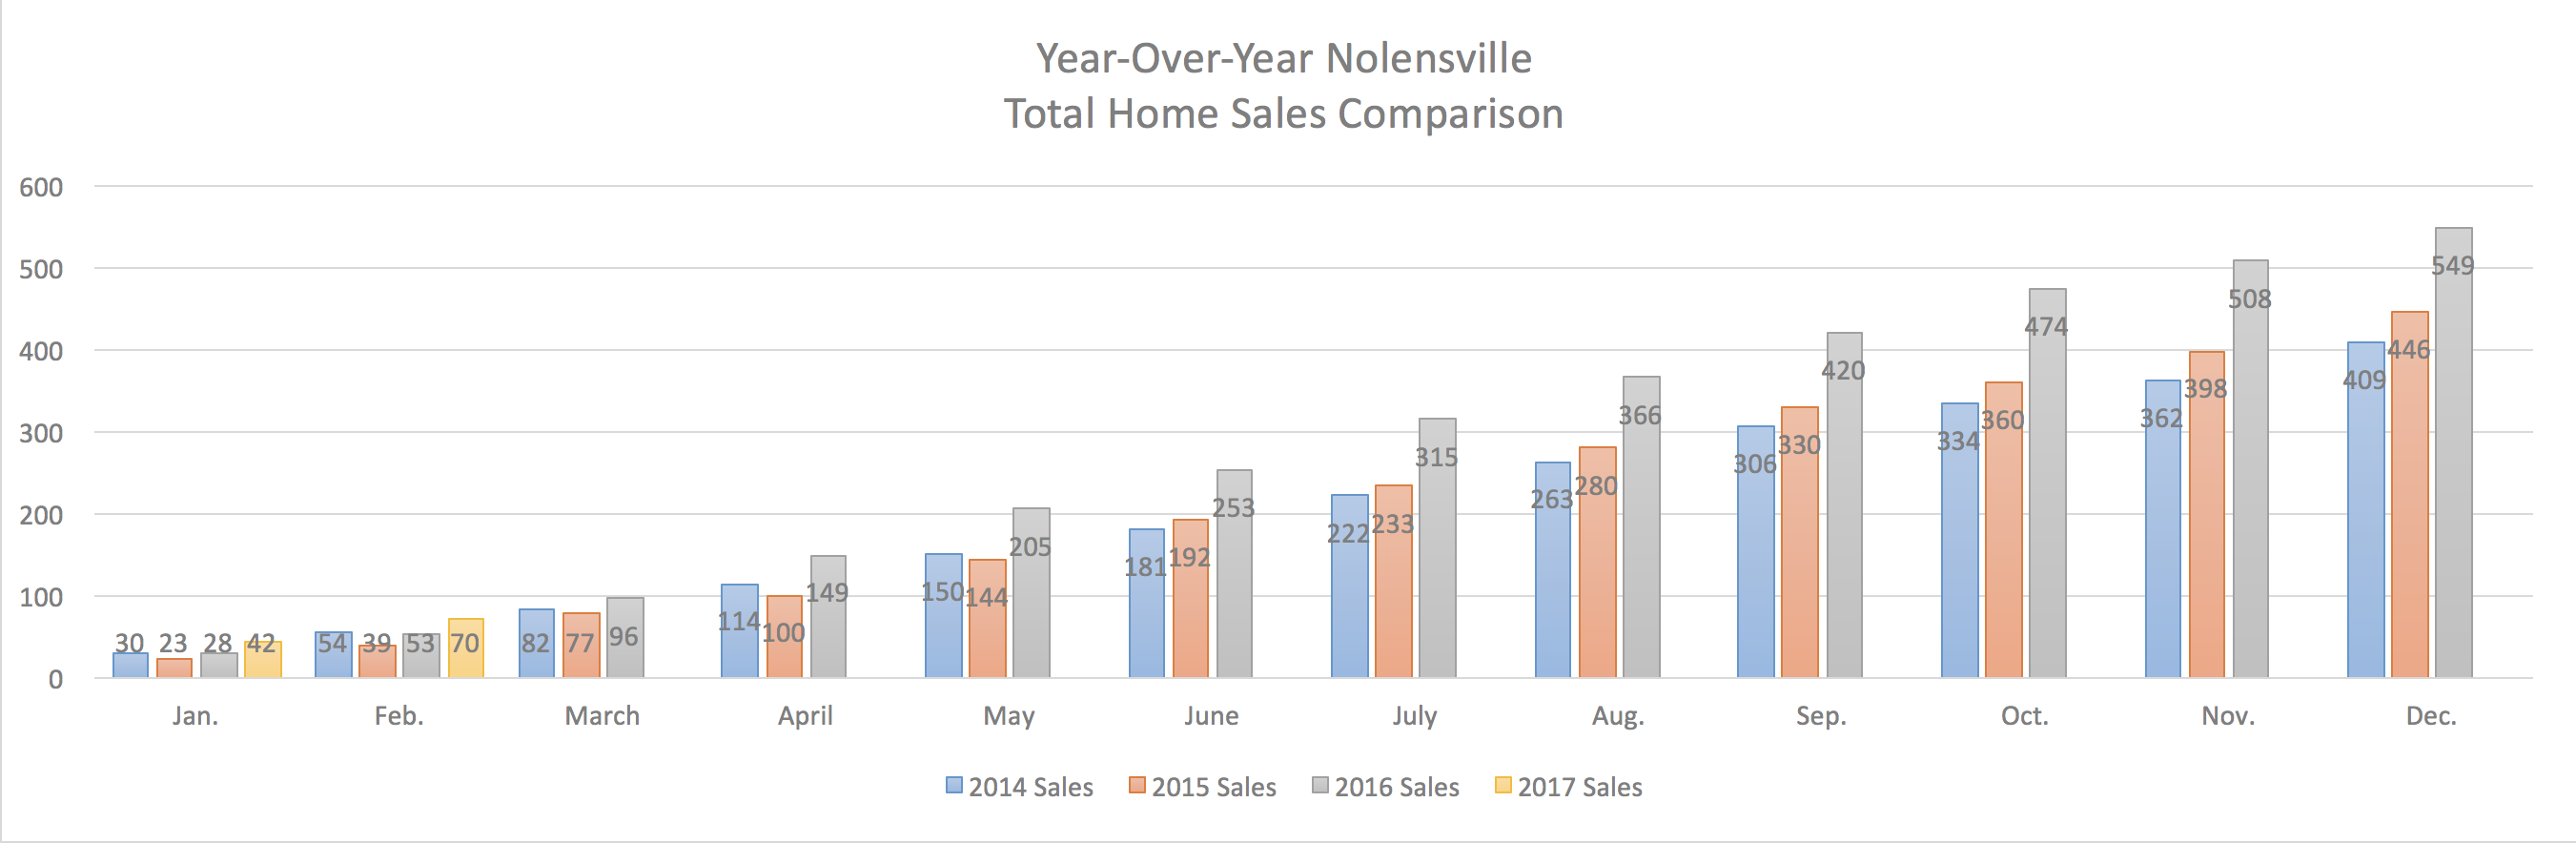 Nolensville Year-Over-Year Home Sales Through February 2017